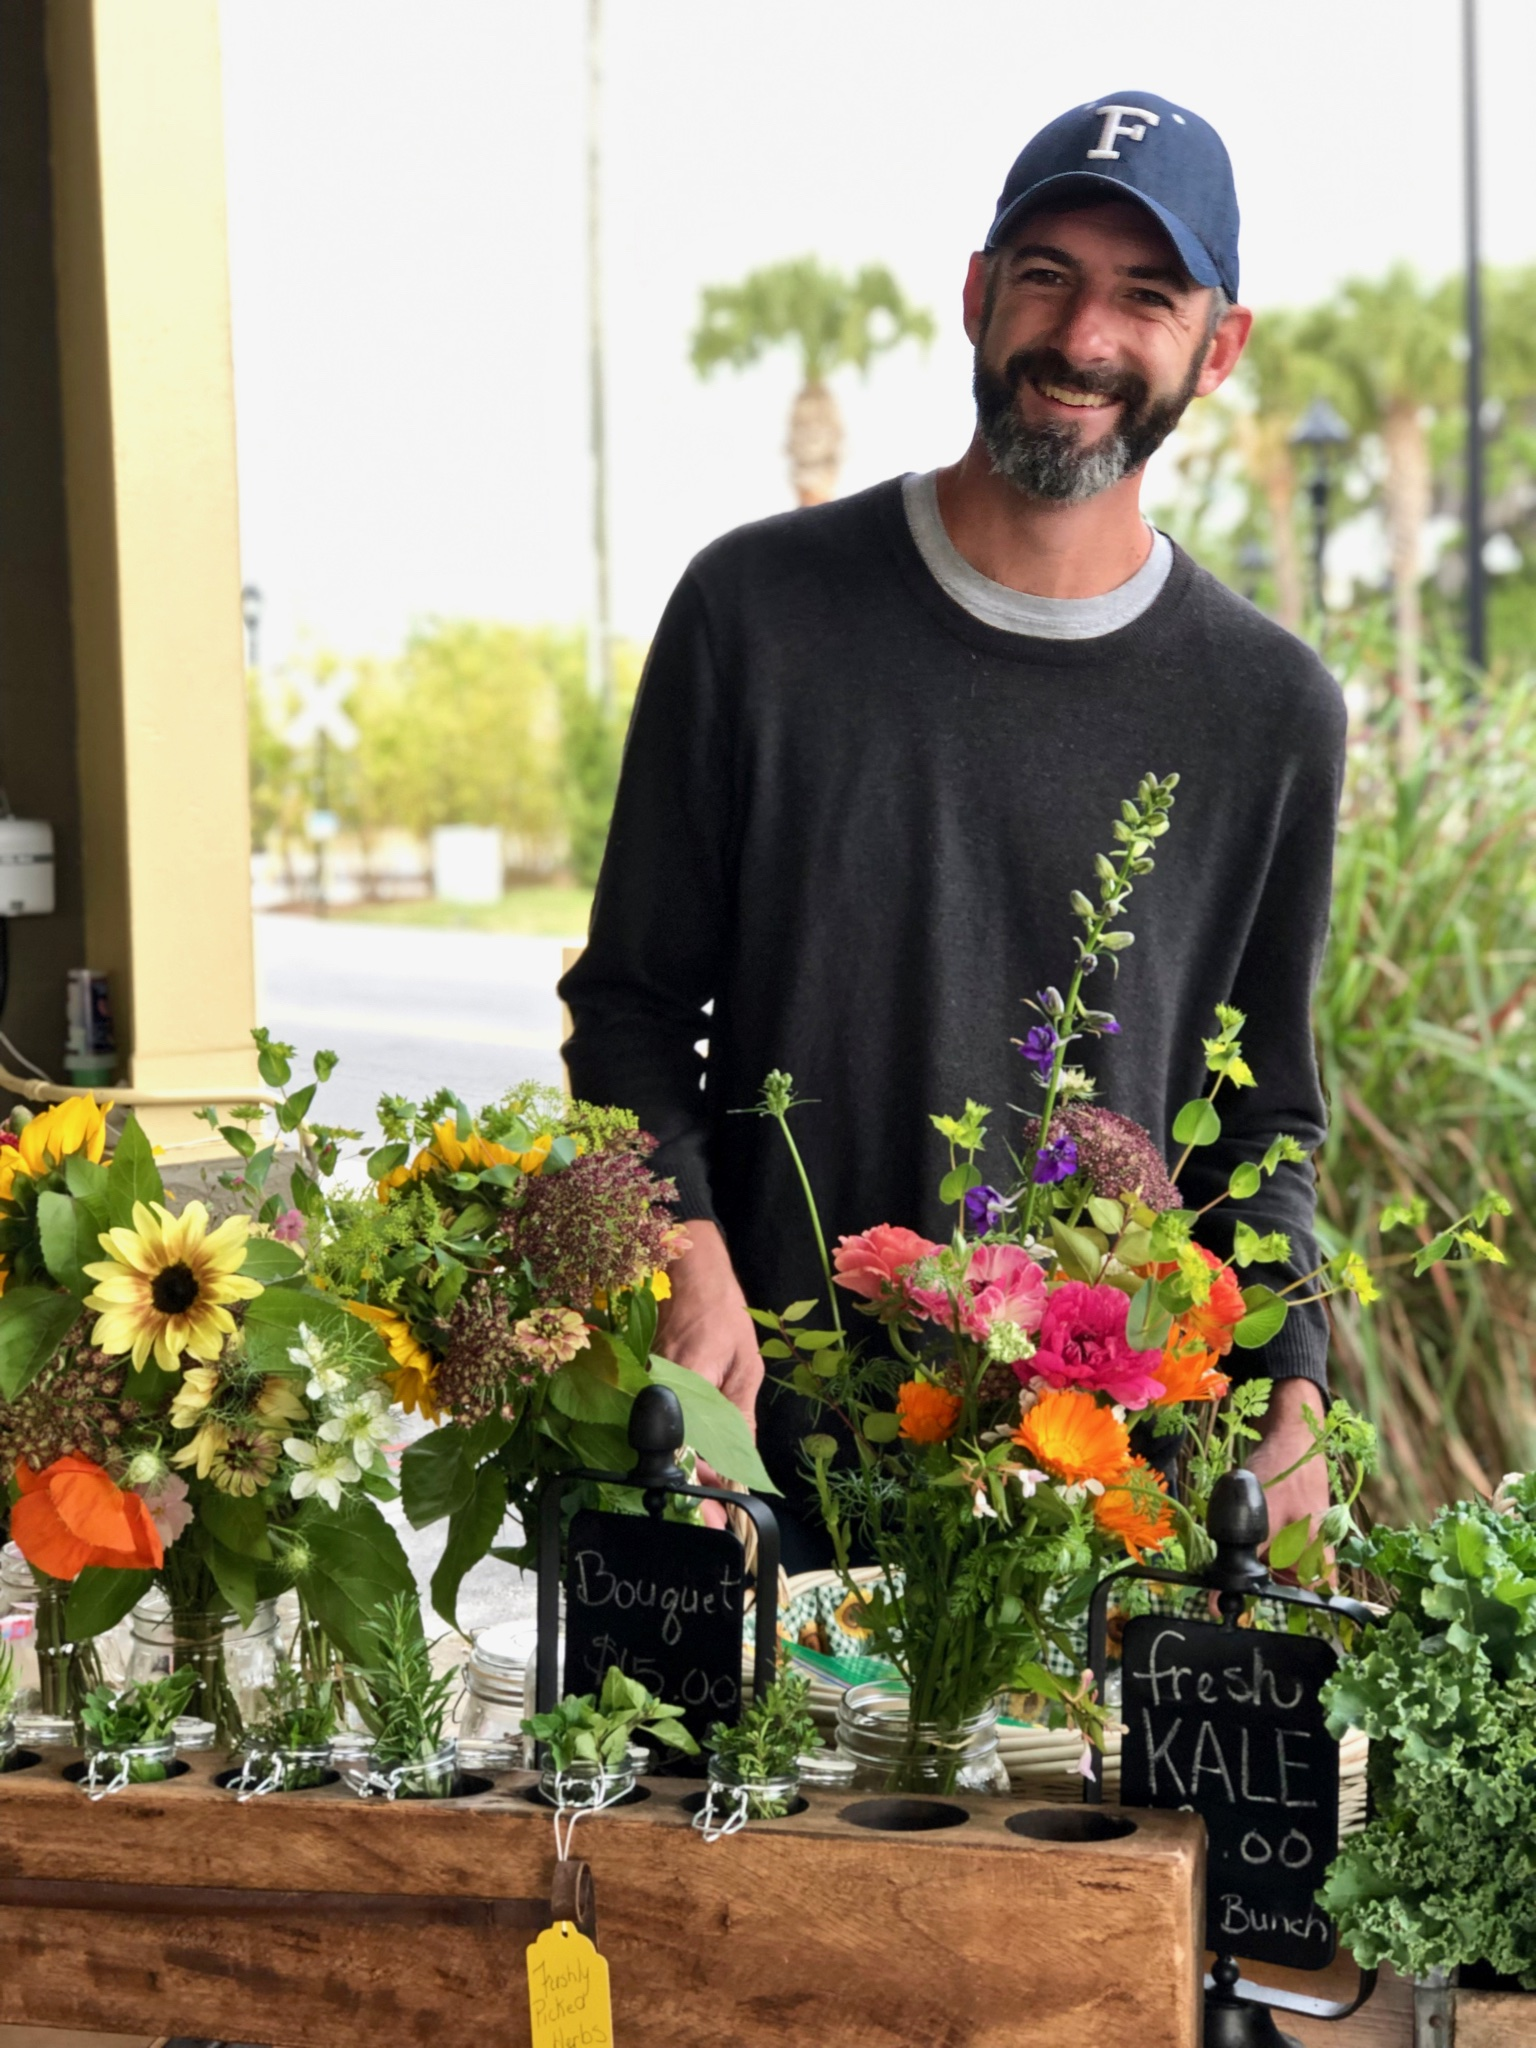 Farmer's Market - Each Saturday from the beginning of September to the end of May you can buy our flowers at the Ocala Downtown Market. Hours are 9:00 am to 2:00 pm. The Ocala Downtown Market is at the corner of S.E. 3rd Street and S.E. 3rd Avenue in Ocala, Florida.